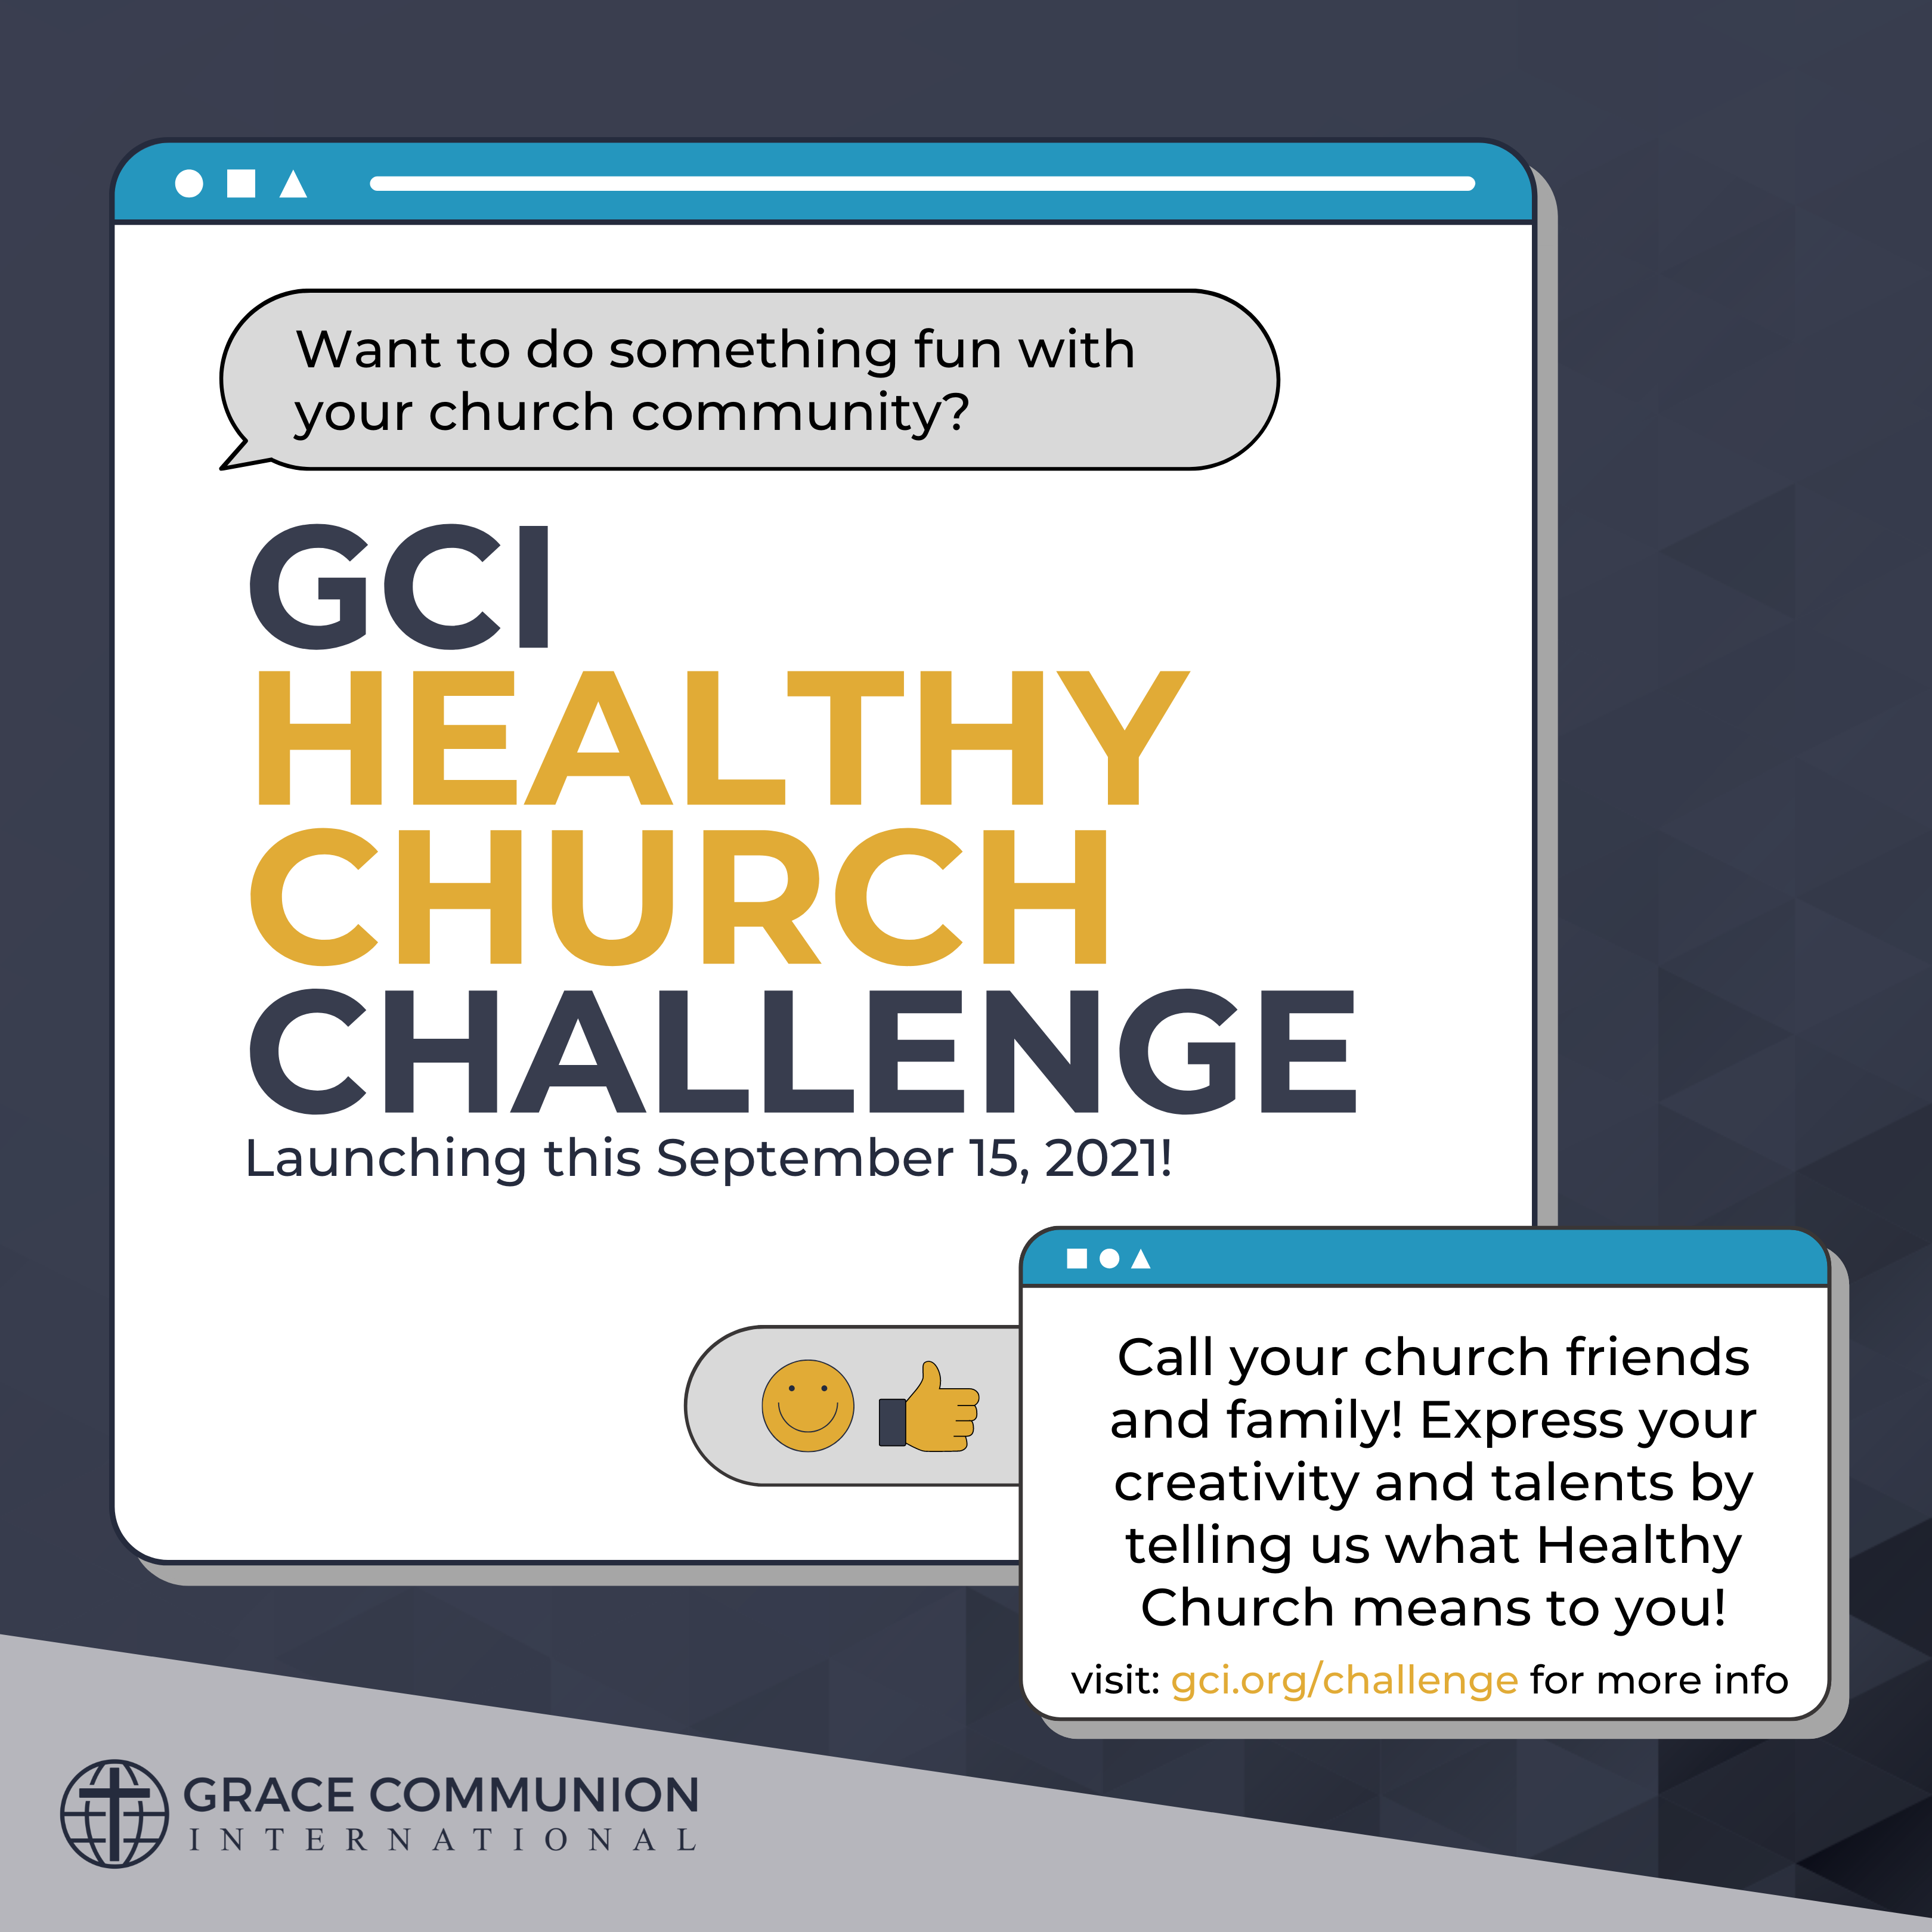 GCI Healthy Church Challenge. Want something fun to do with your church community? Launching this september, 15, 2021. Call your church friends and family! Express your creativity by telling us what healthy church means to you!